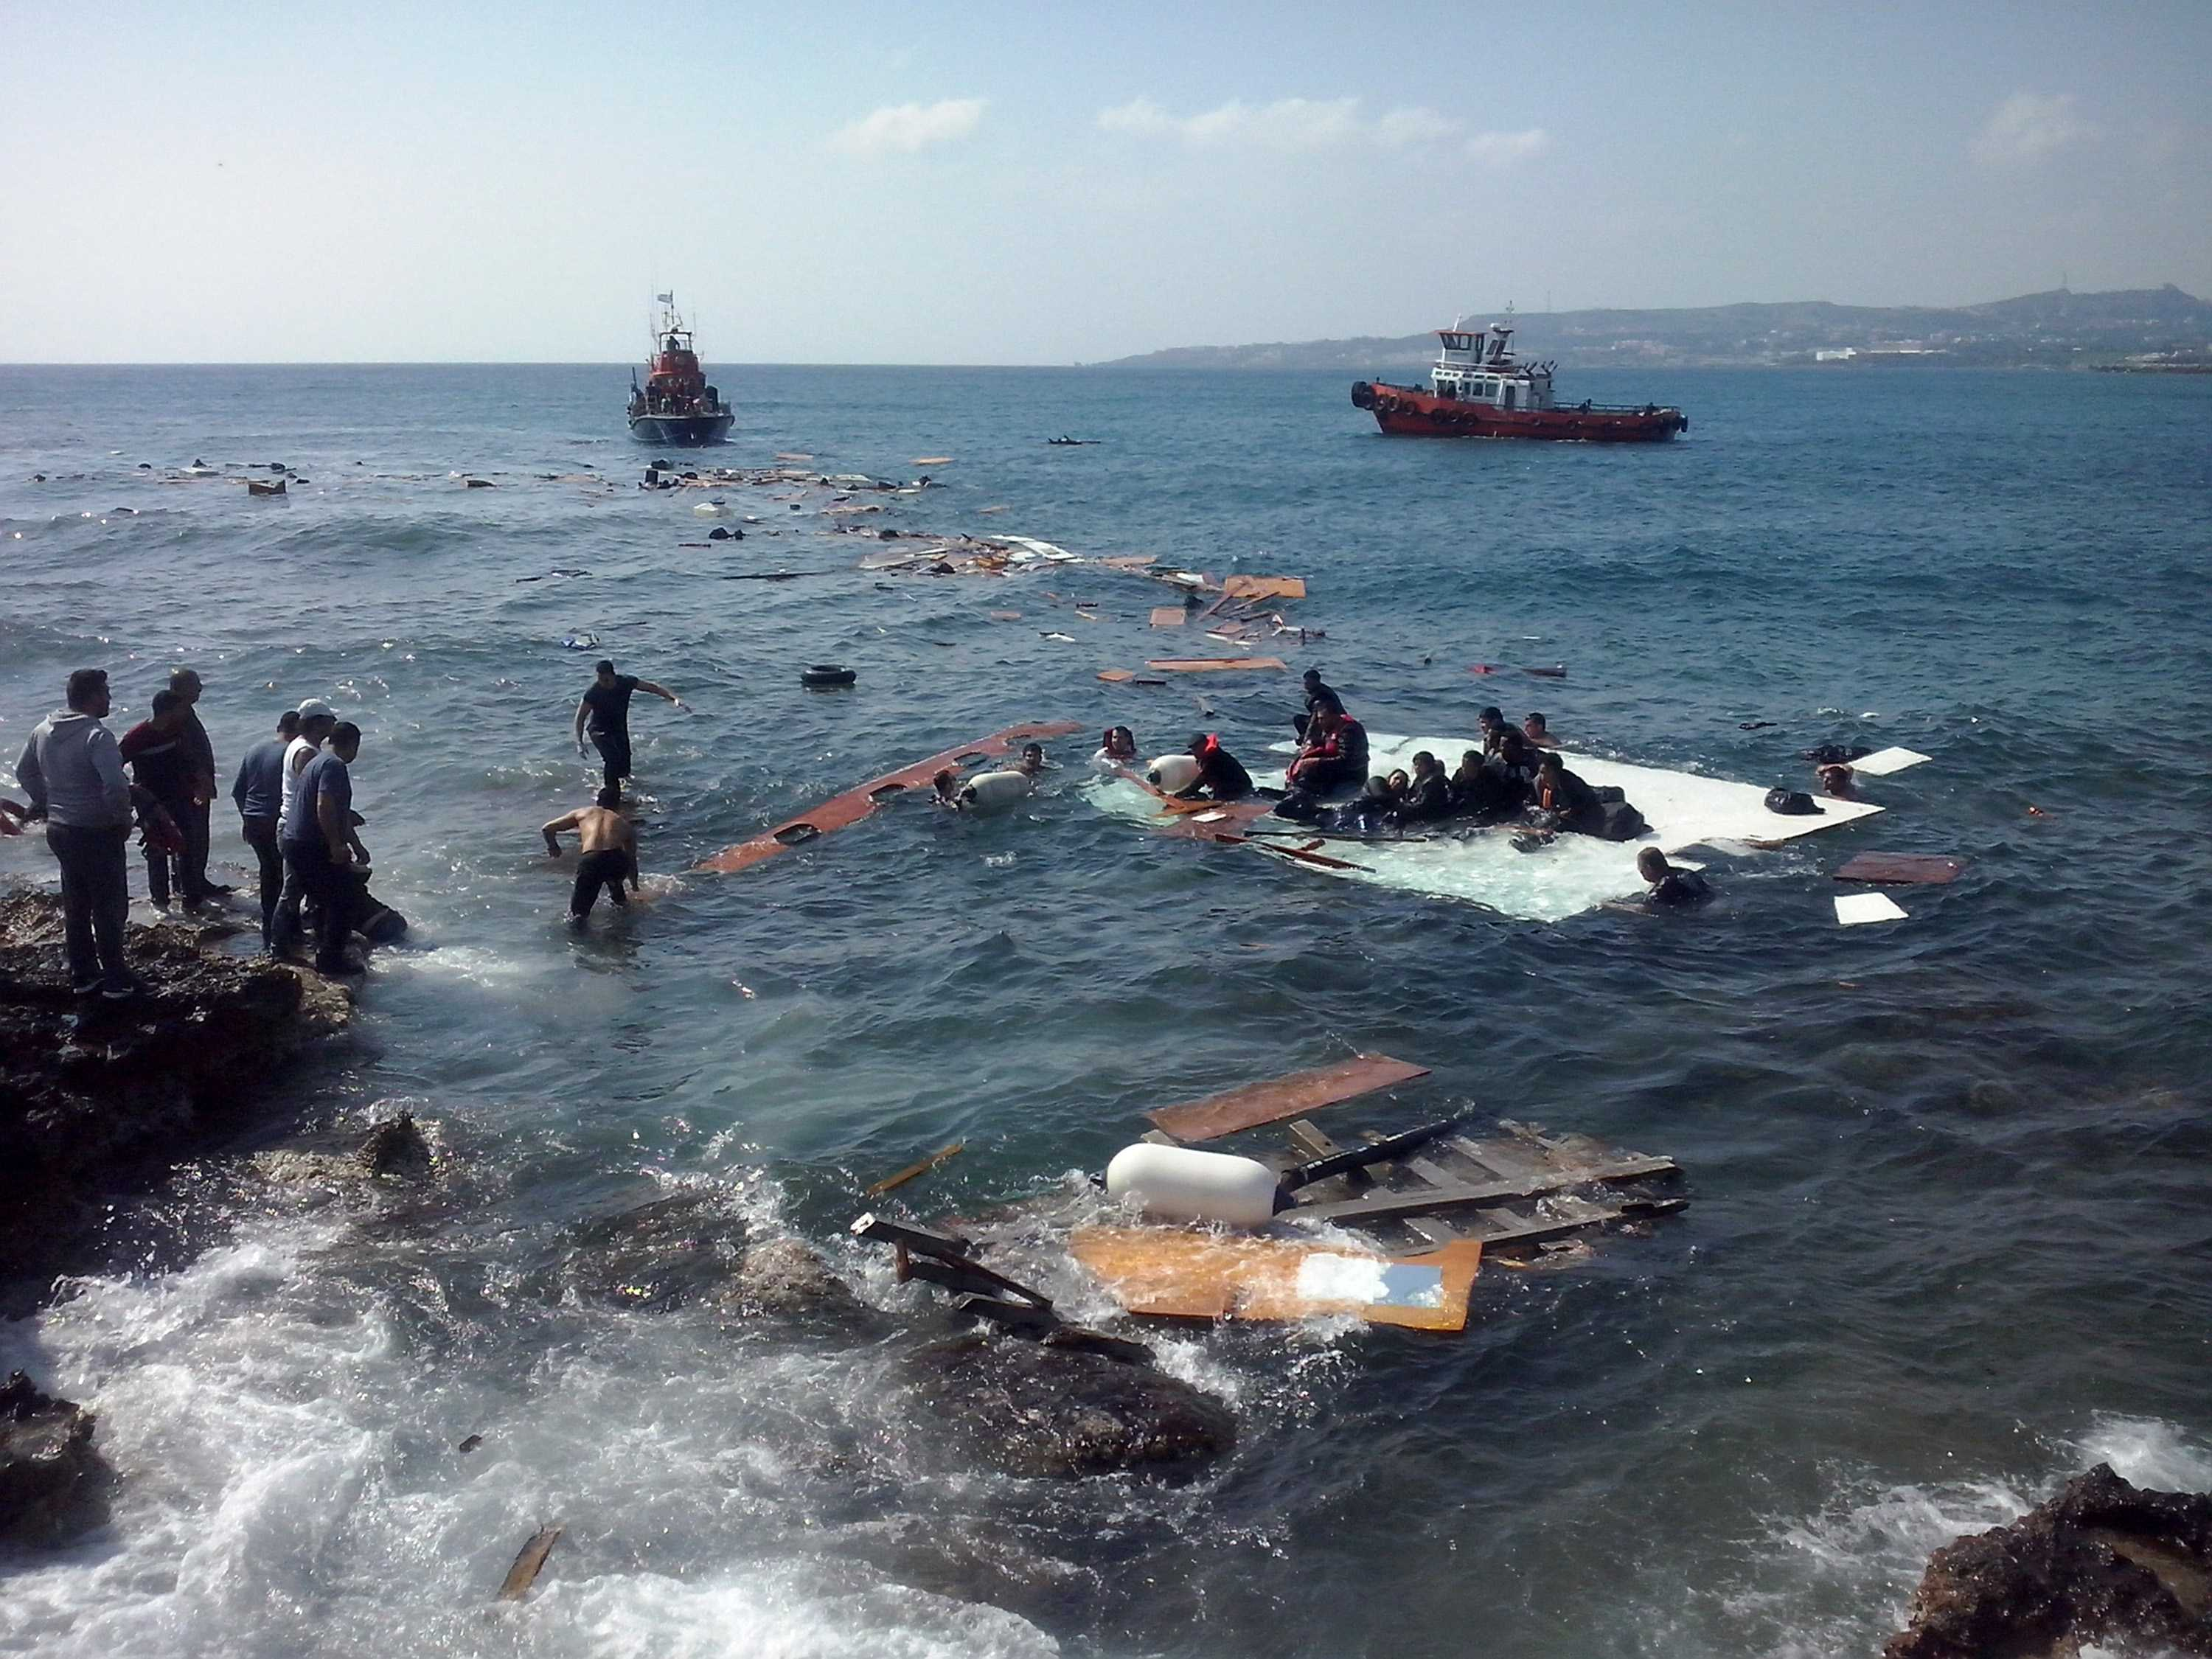 A vessel carrying approximately 200 irregular migrants sank off the coasts of Rhodes island in southeastern Aegean Sea on Monday, April 20, 2015, local authorities said. At least three people died in the accident. European Union officials gathered for an emergency meeting Monday, after hundreds of people are believed to have died in what could be the Mediterranean's deadliest migrant disaster. (Xinhua/Zuma Press/TNS)